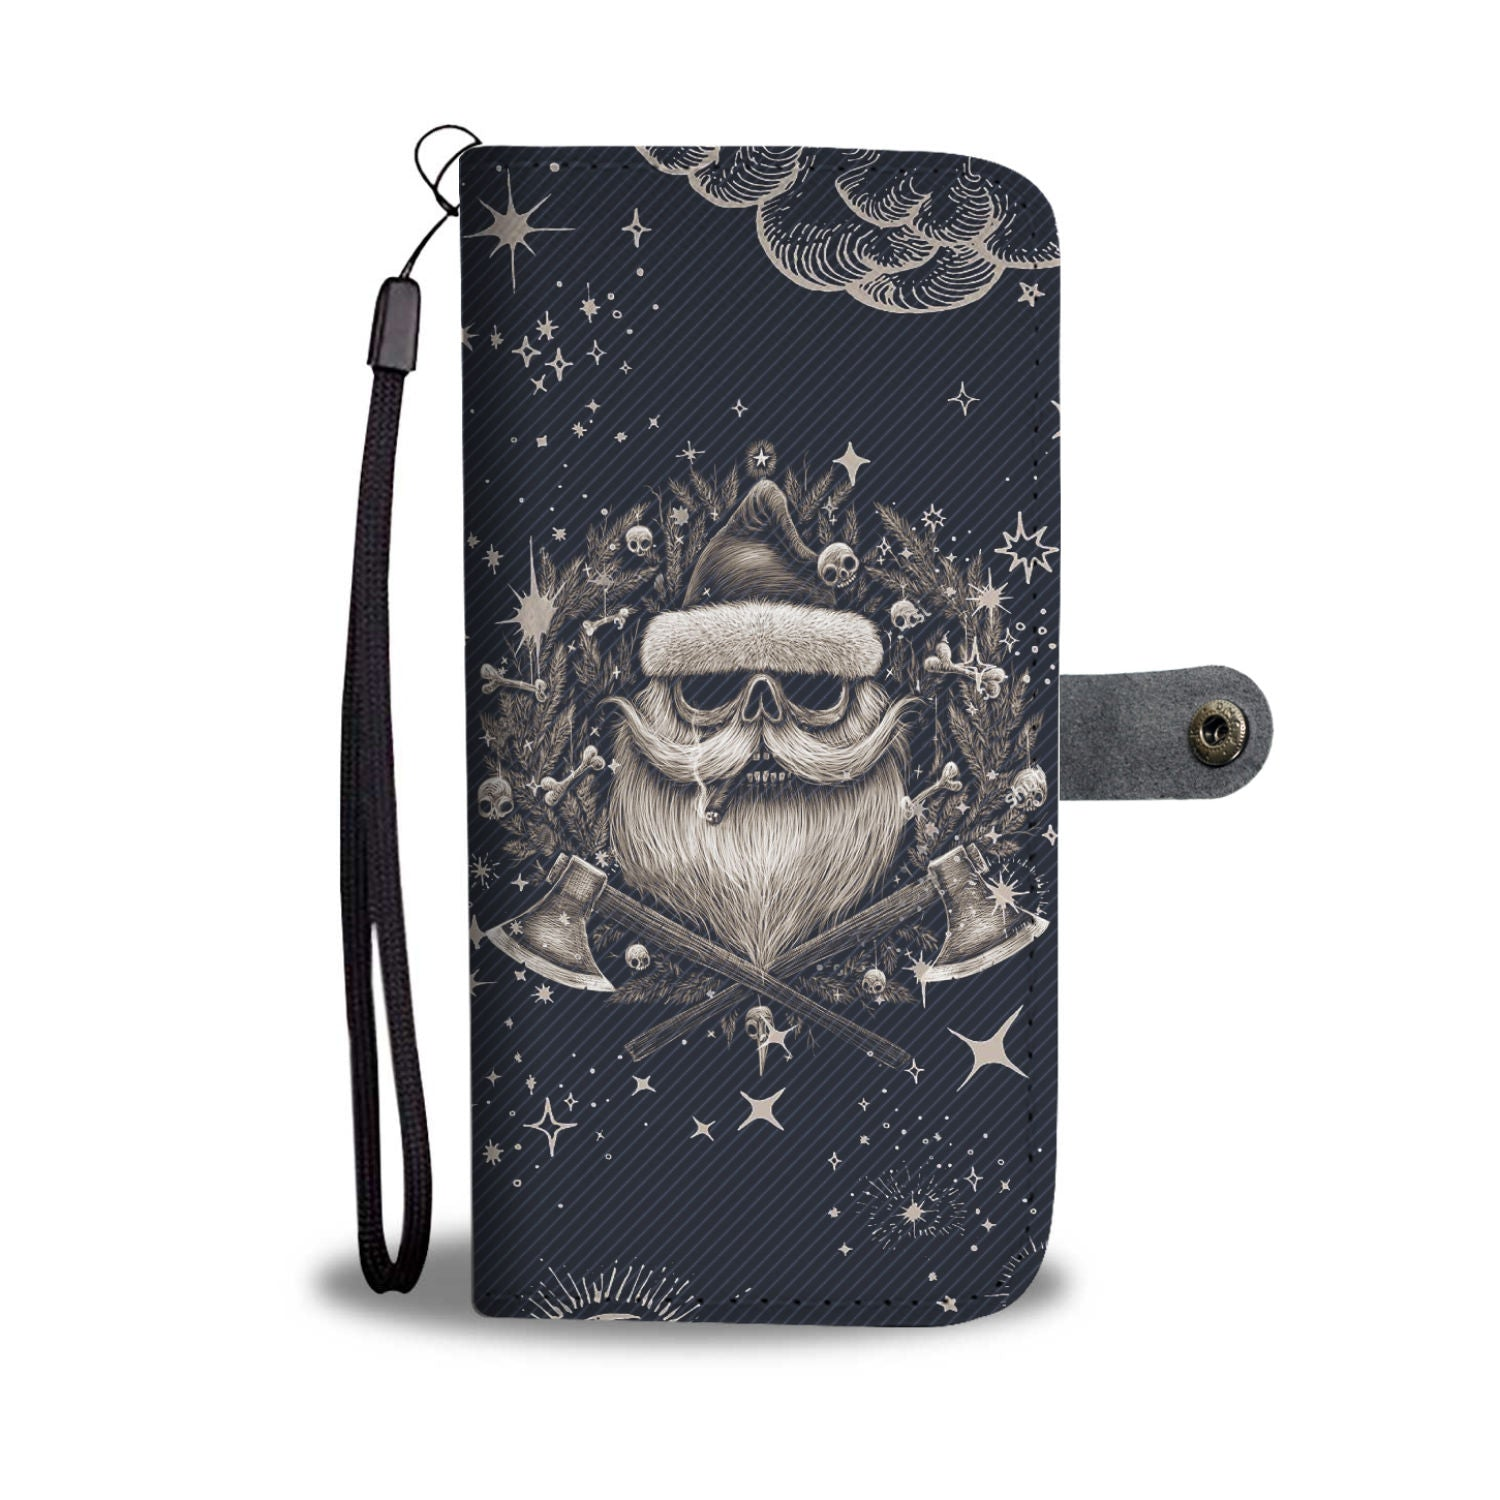 Awesome Santa Skull RFID Wallet Phone Case Limited Edition